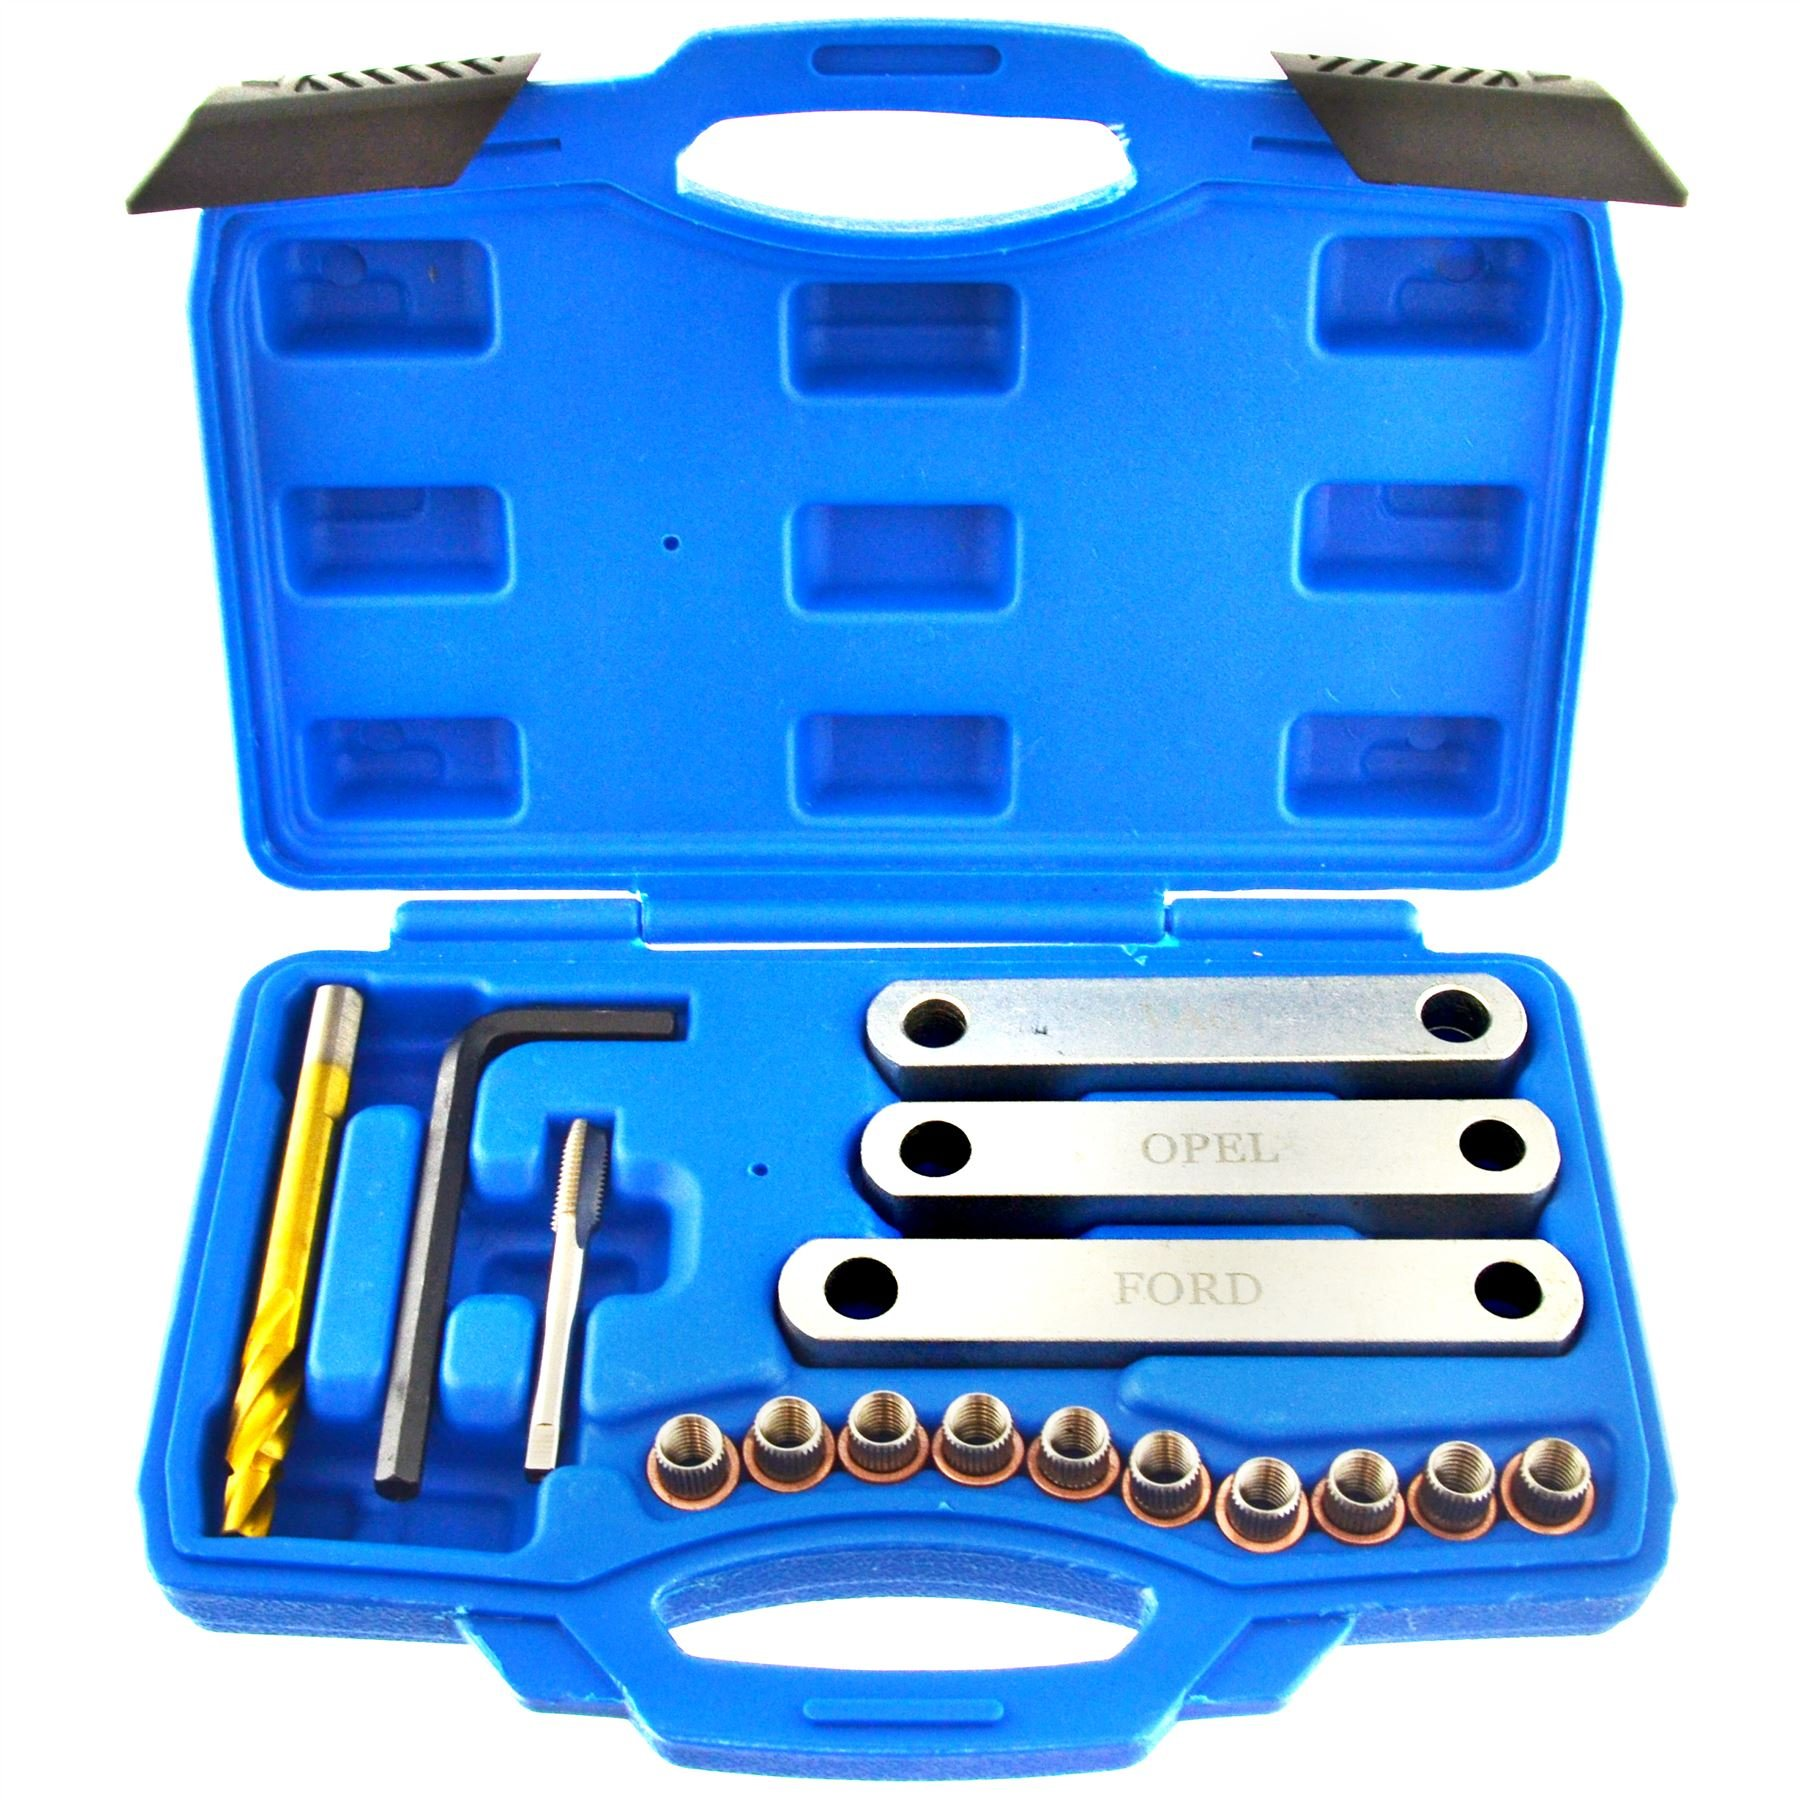 AB Tools-US Pro Brake Calliper Guide Thread Repair Kit Core Drill VAG VW Vauxhall Ford Seat by AB Tools-US Pro (Image #2)